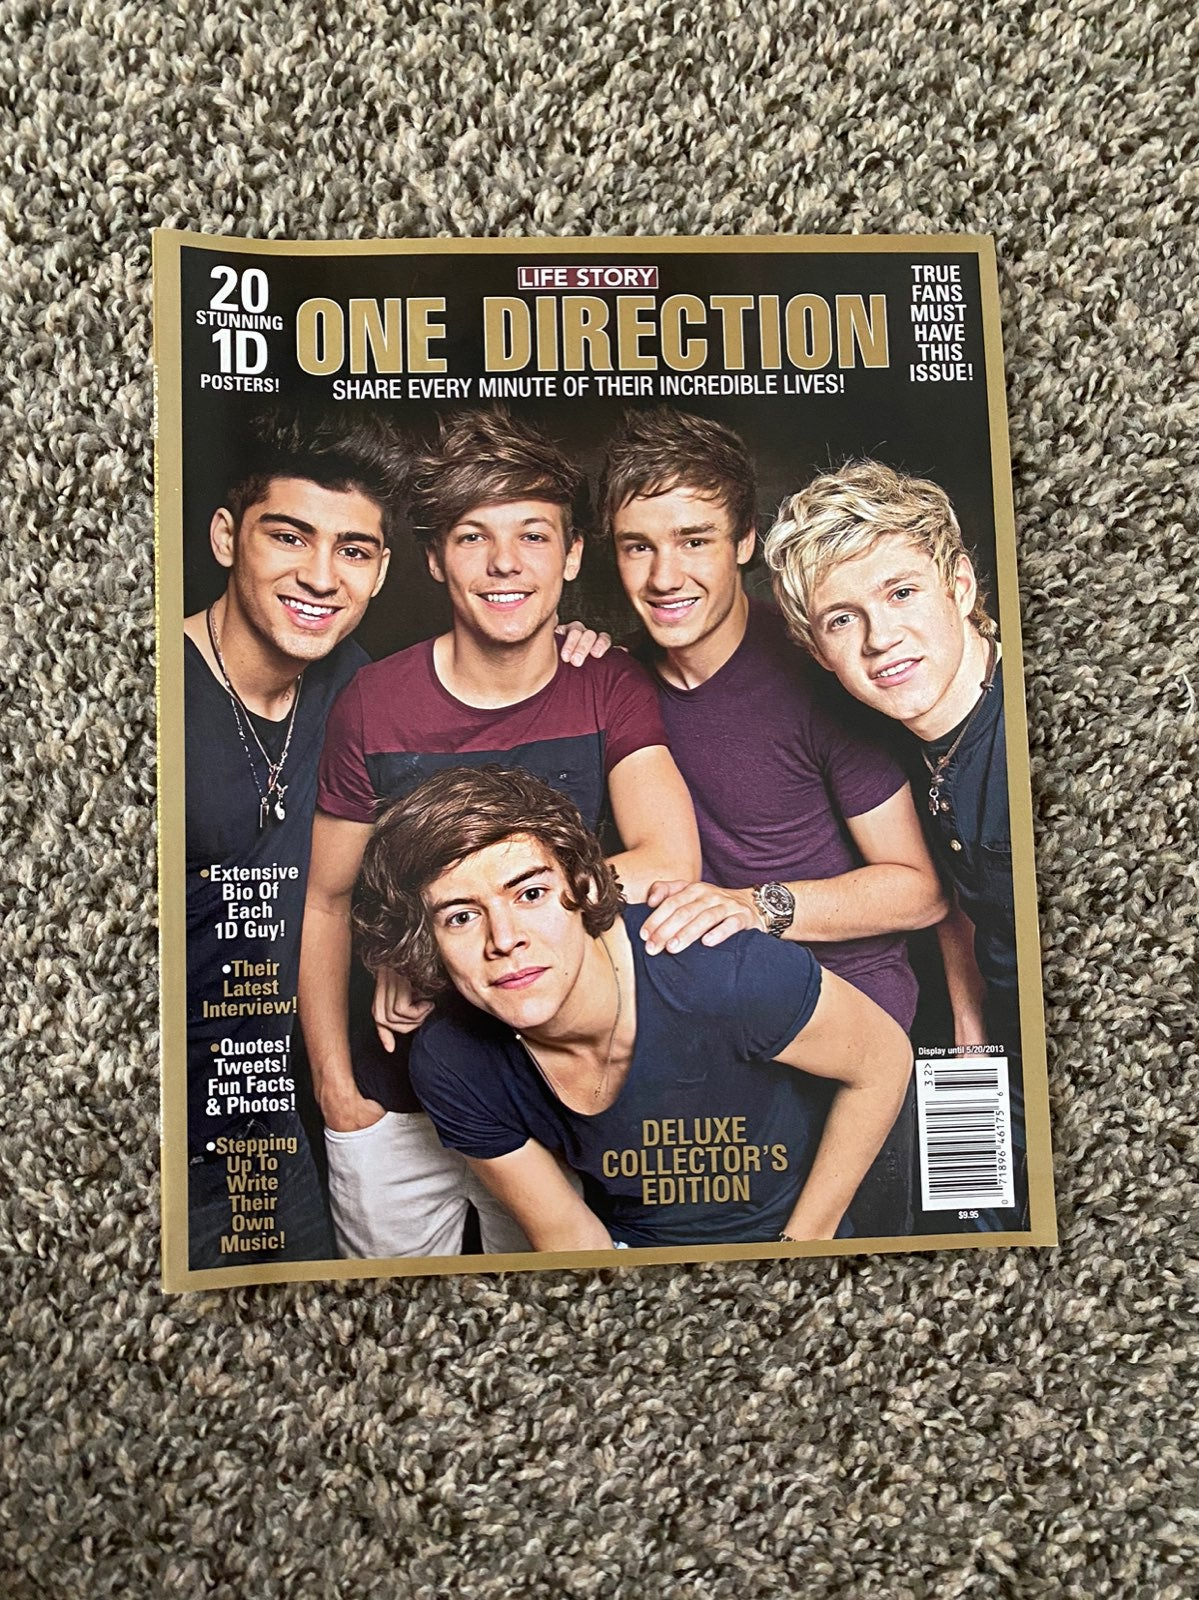 one direction life story deluxe magazine